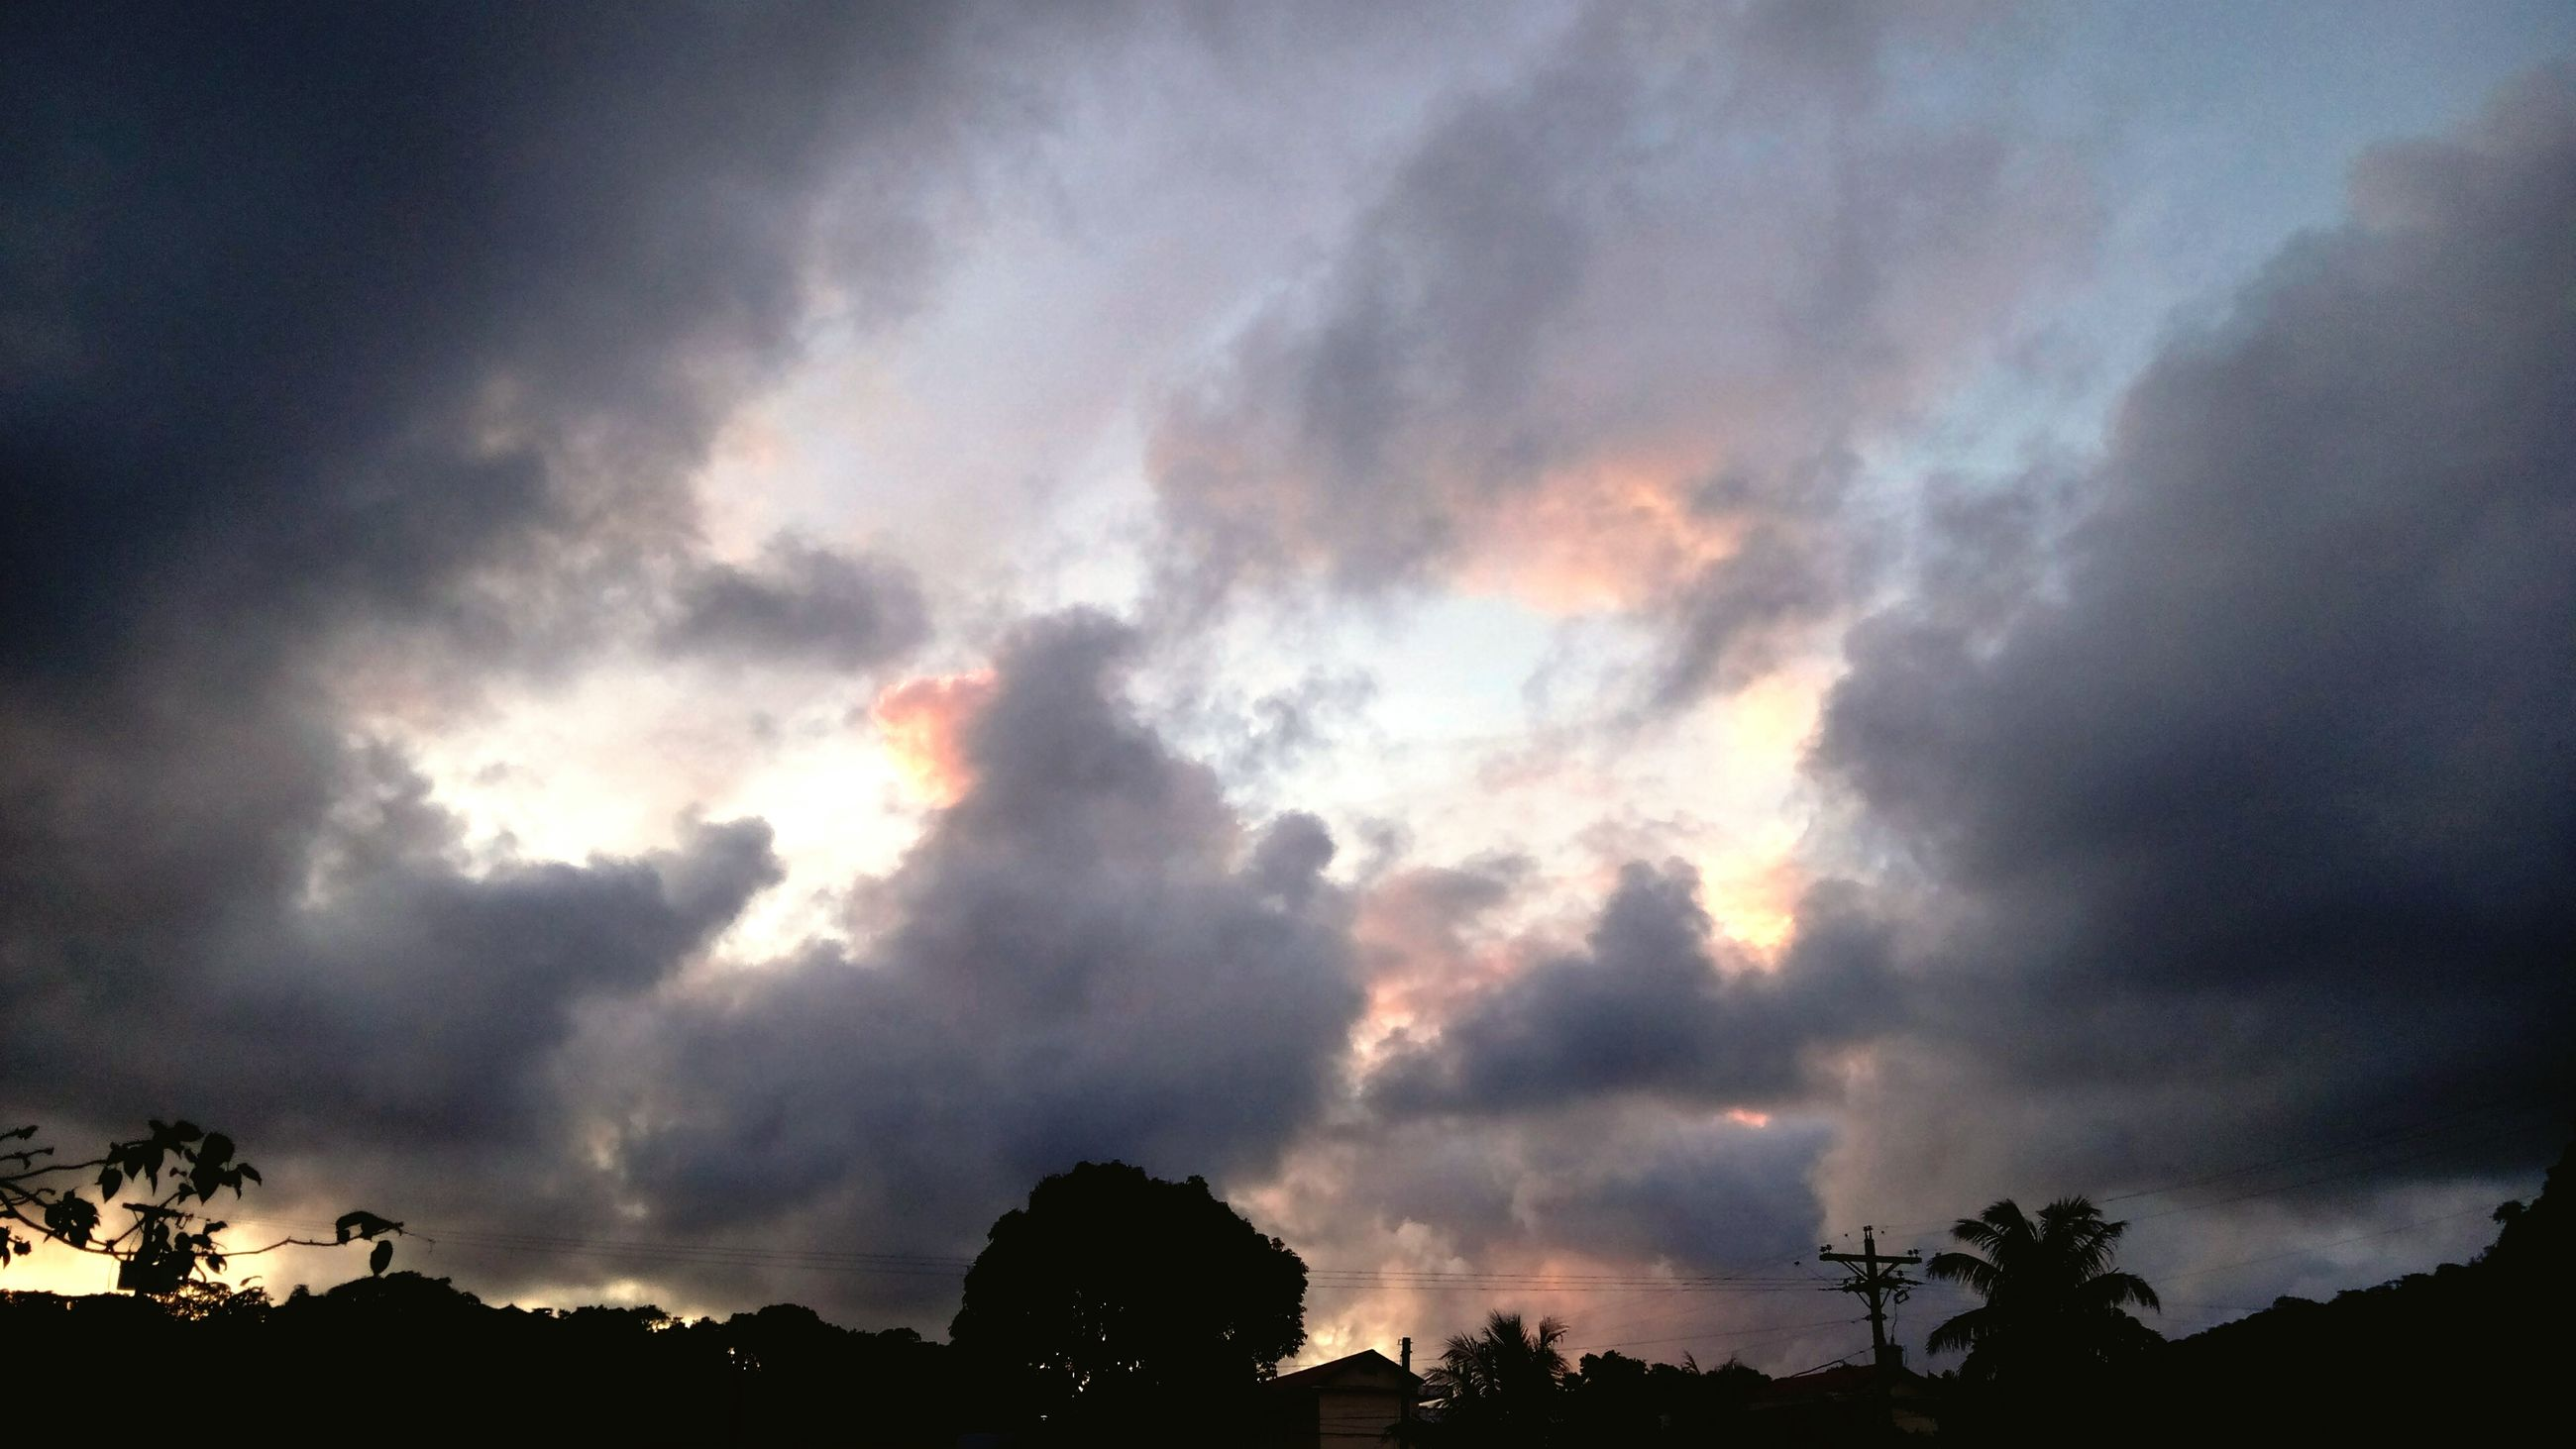 sky, cloud - sky, silhouette, cloudy, beauty in nature, tree, low angle view, tranquility, scenics, tranquil scene, overcast, weather, nature, dramatic sky, cloud, cloudscape, sunset, storm cloud, idyllic, atmospheric mood